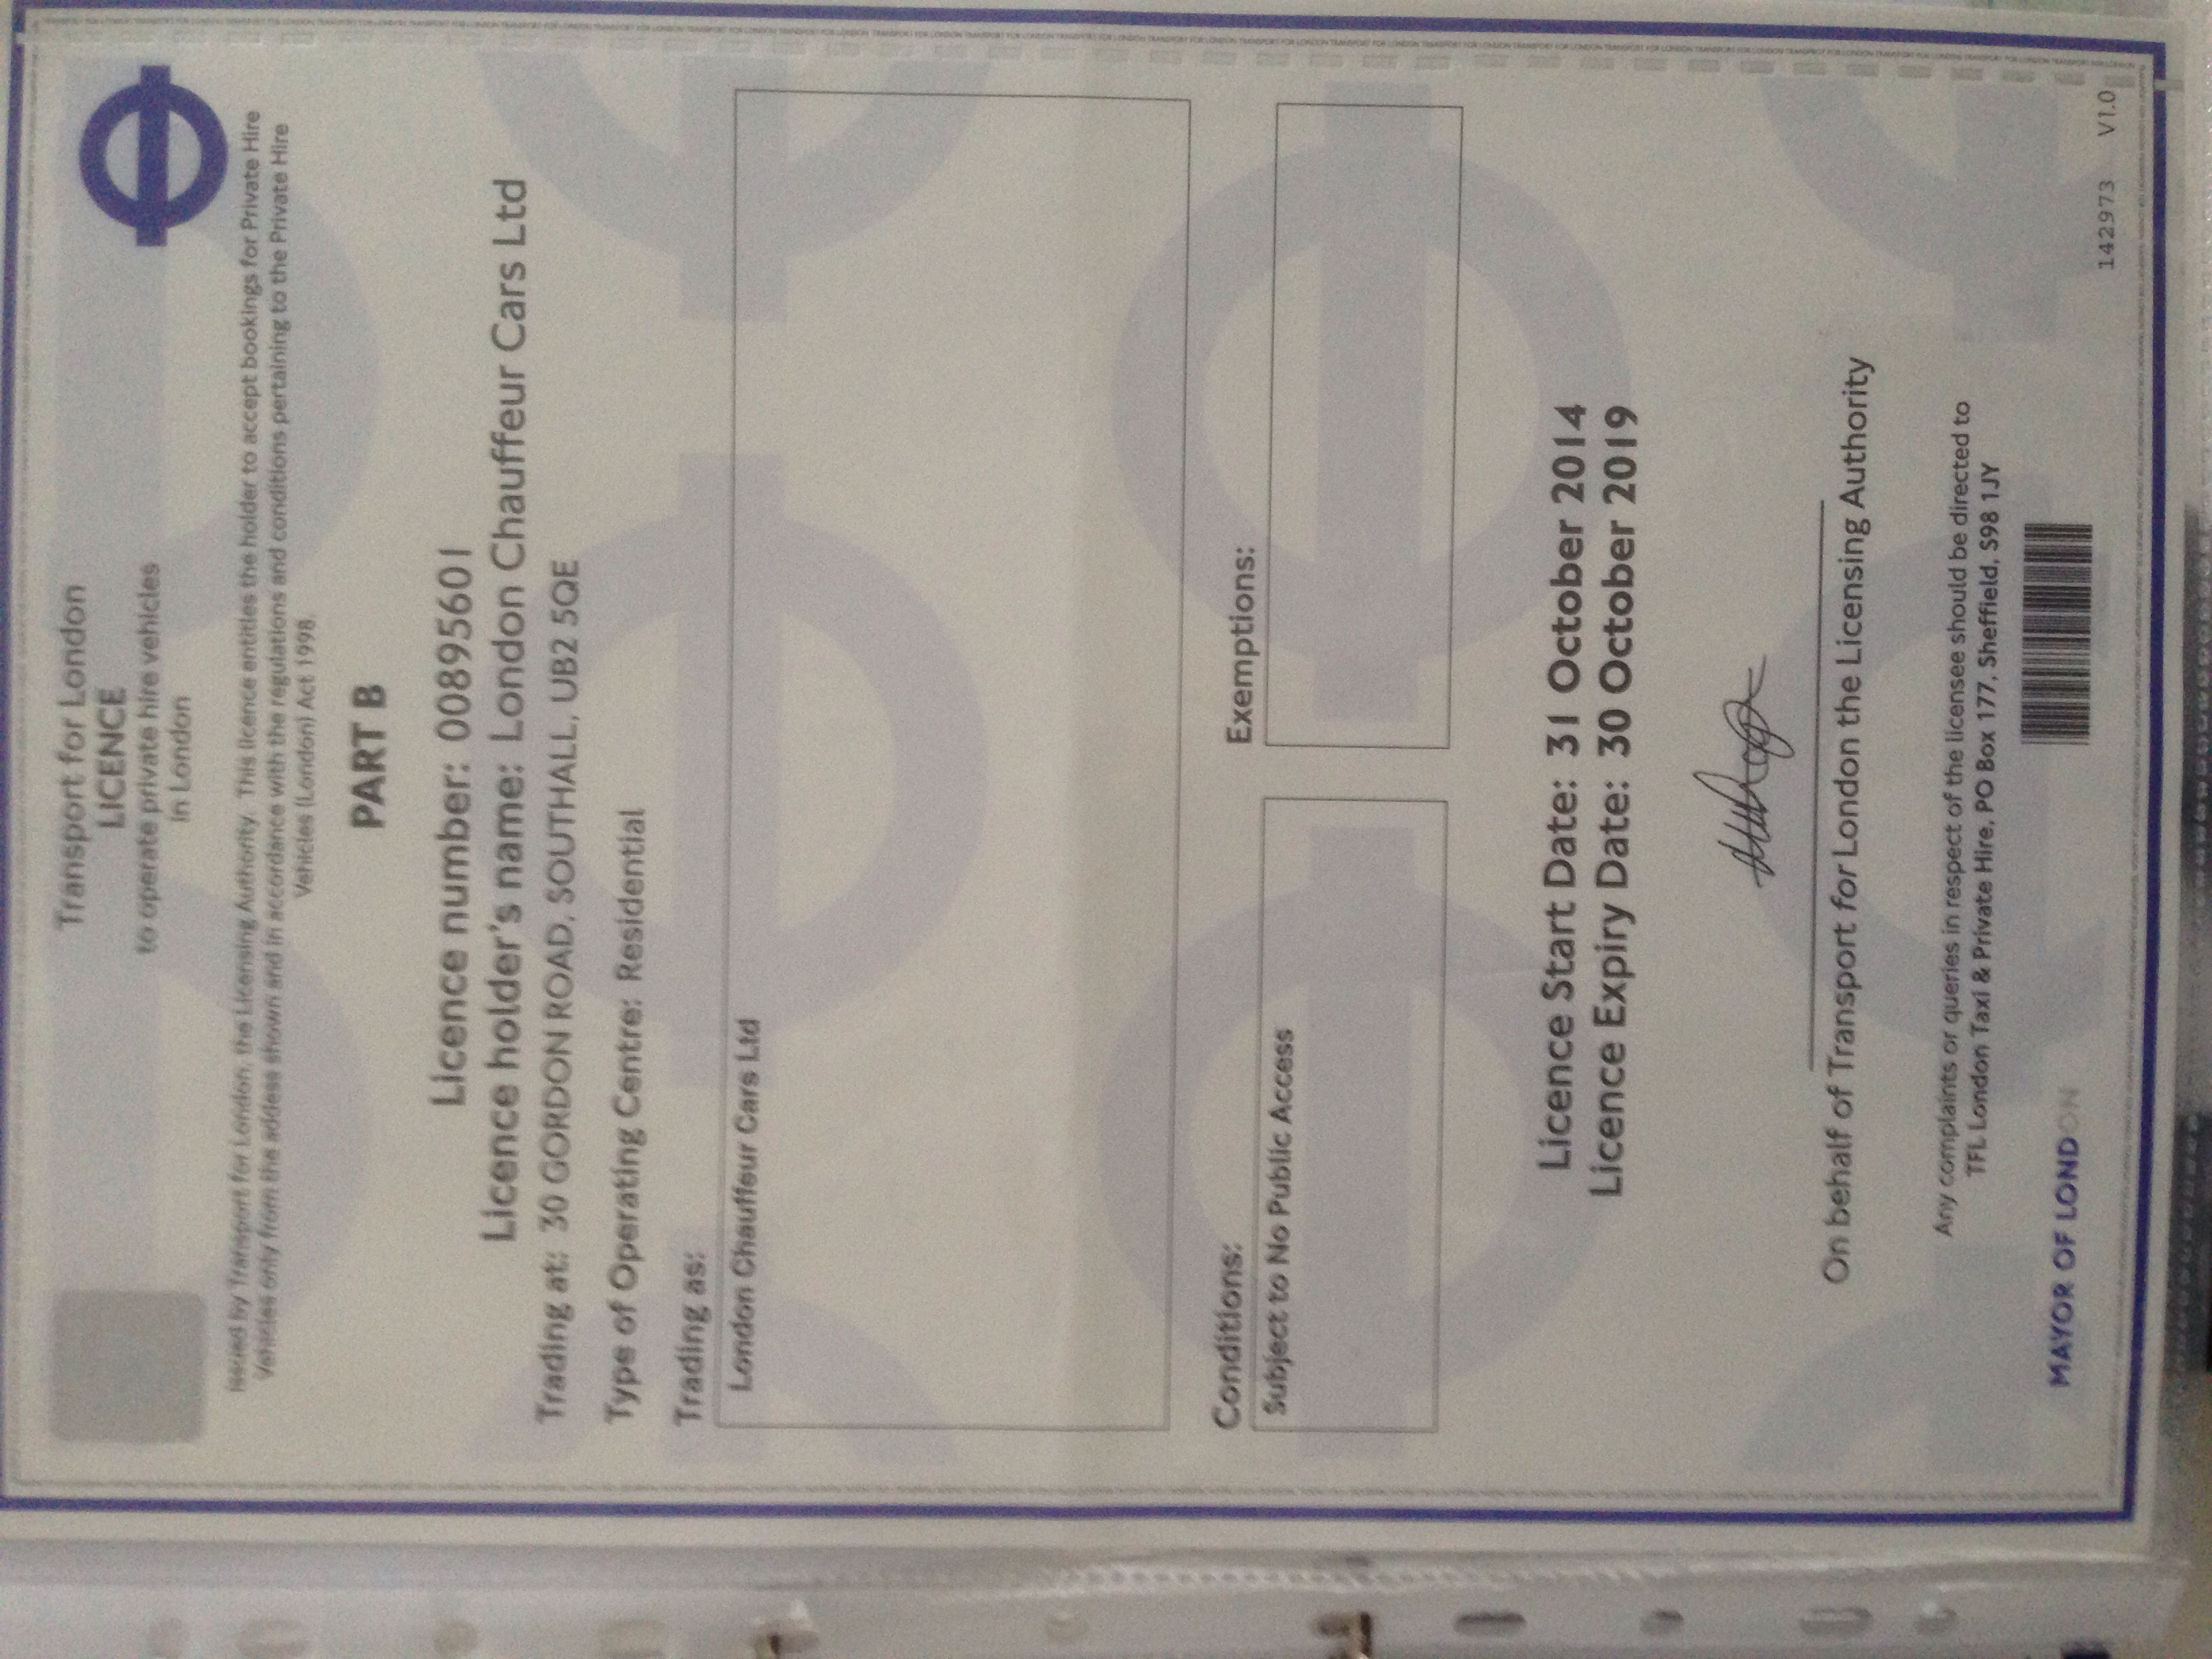 London Chauffeur Cars Ltd transport licence